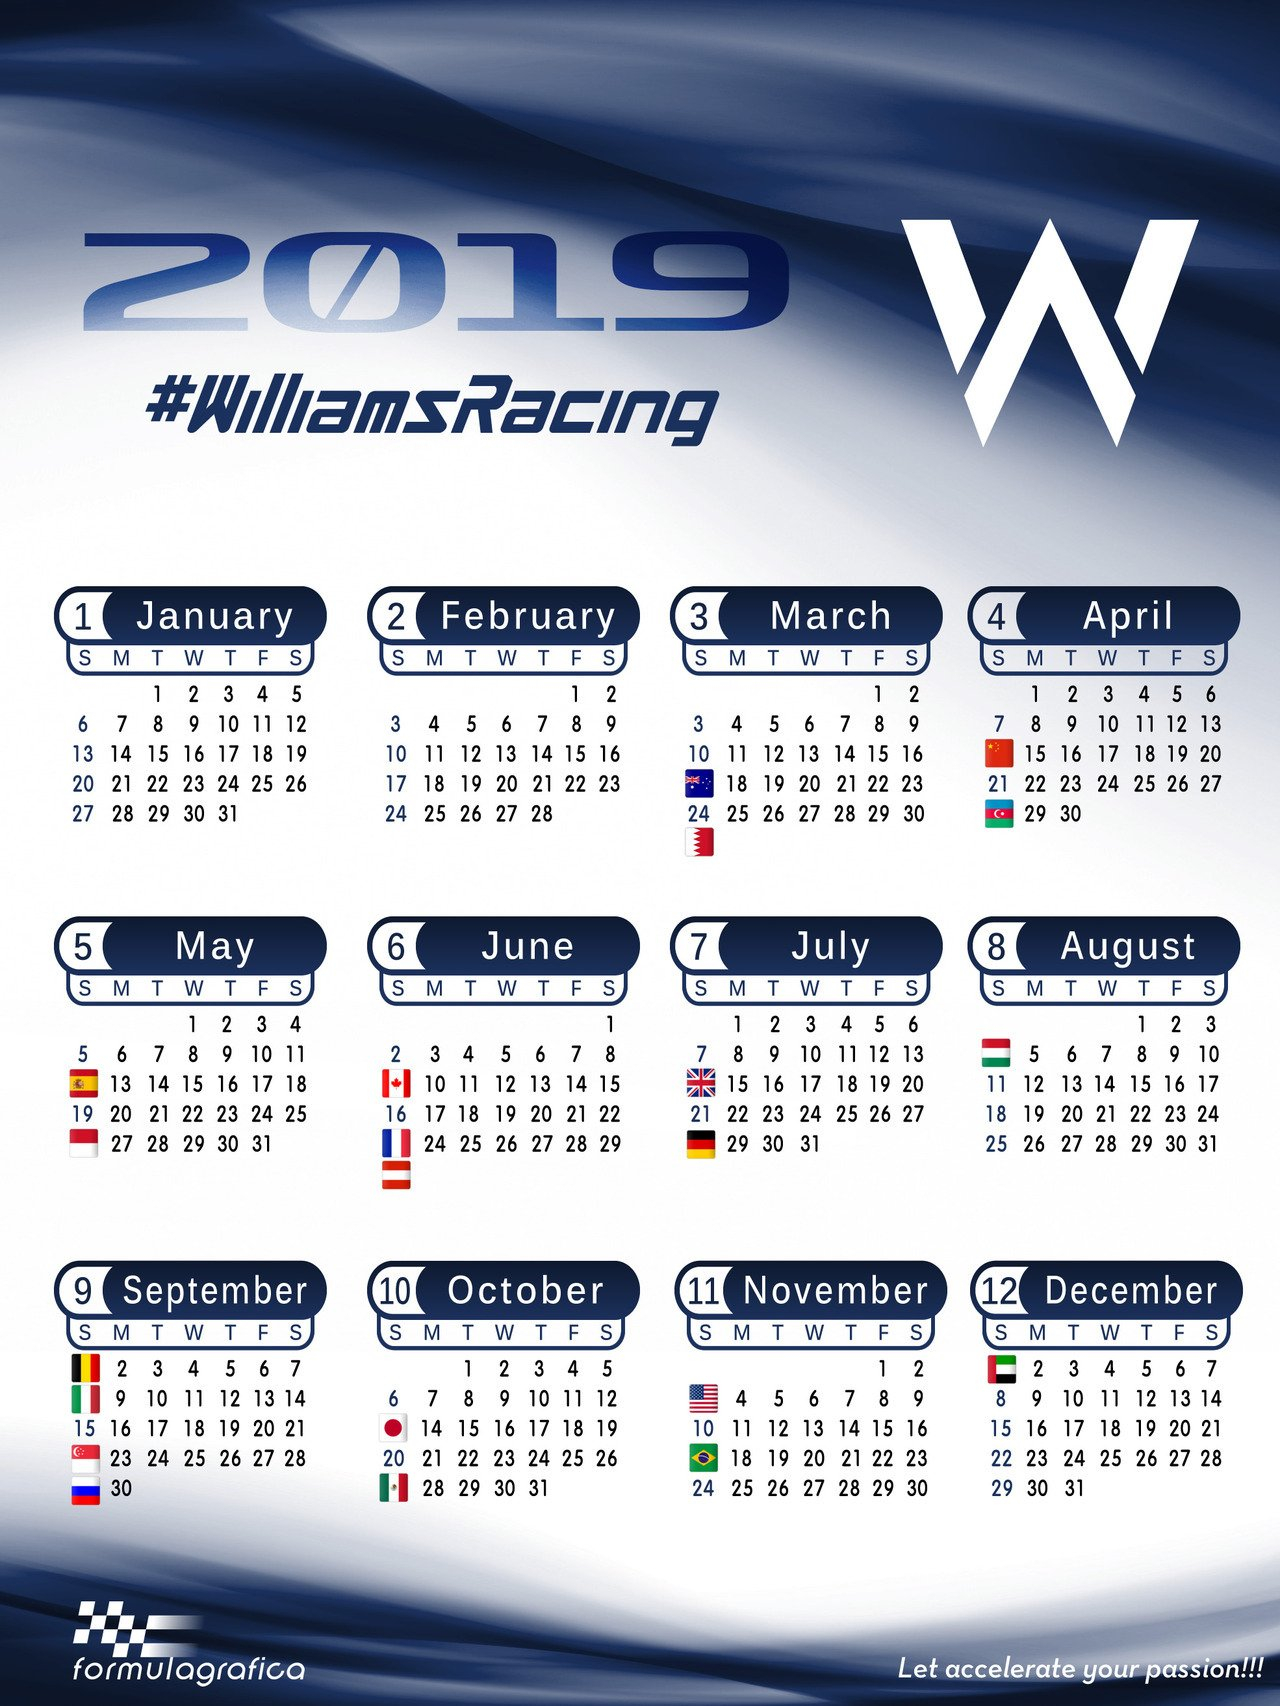 Formulagrafica — Calendar - 2019 Formula 1 Season - Williams Racing Calendar 2019 Formula 1